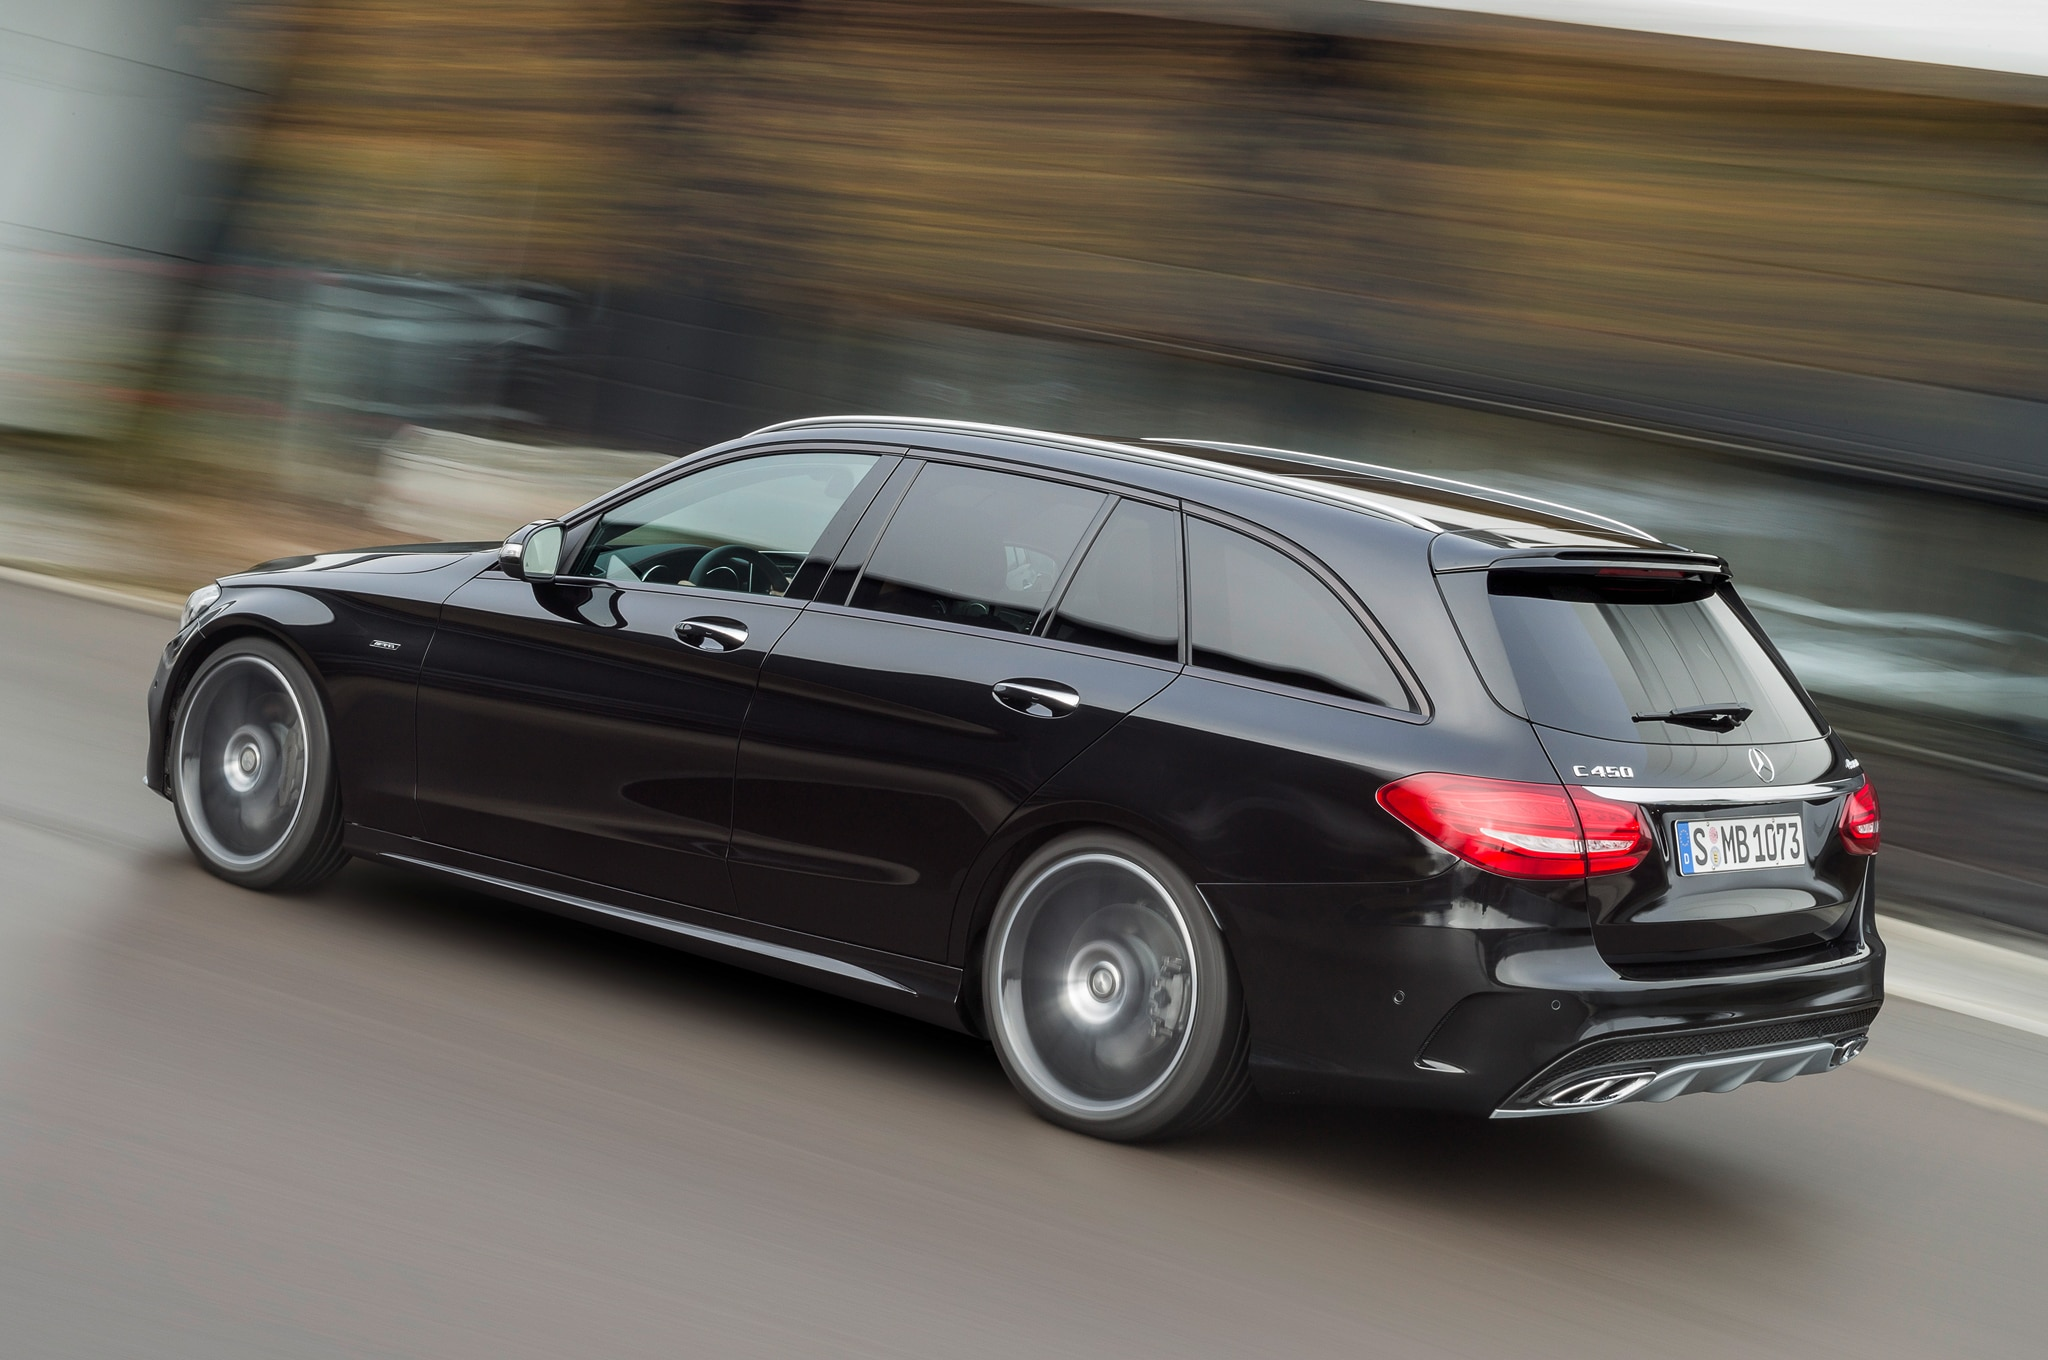 https://st.automobilemag.com/uploads/sites/11/2015/01/2016-Mercedes-Benz-C450-AMG-4Matic-wagon-rear-motion-view.jpg